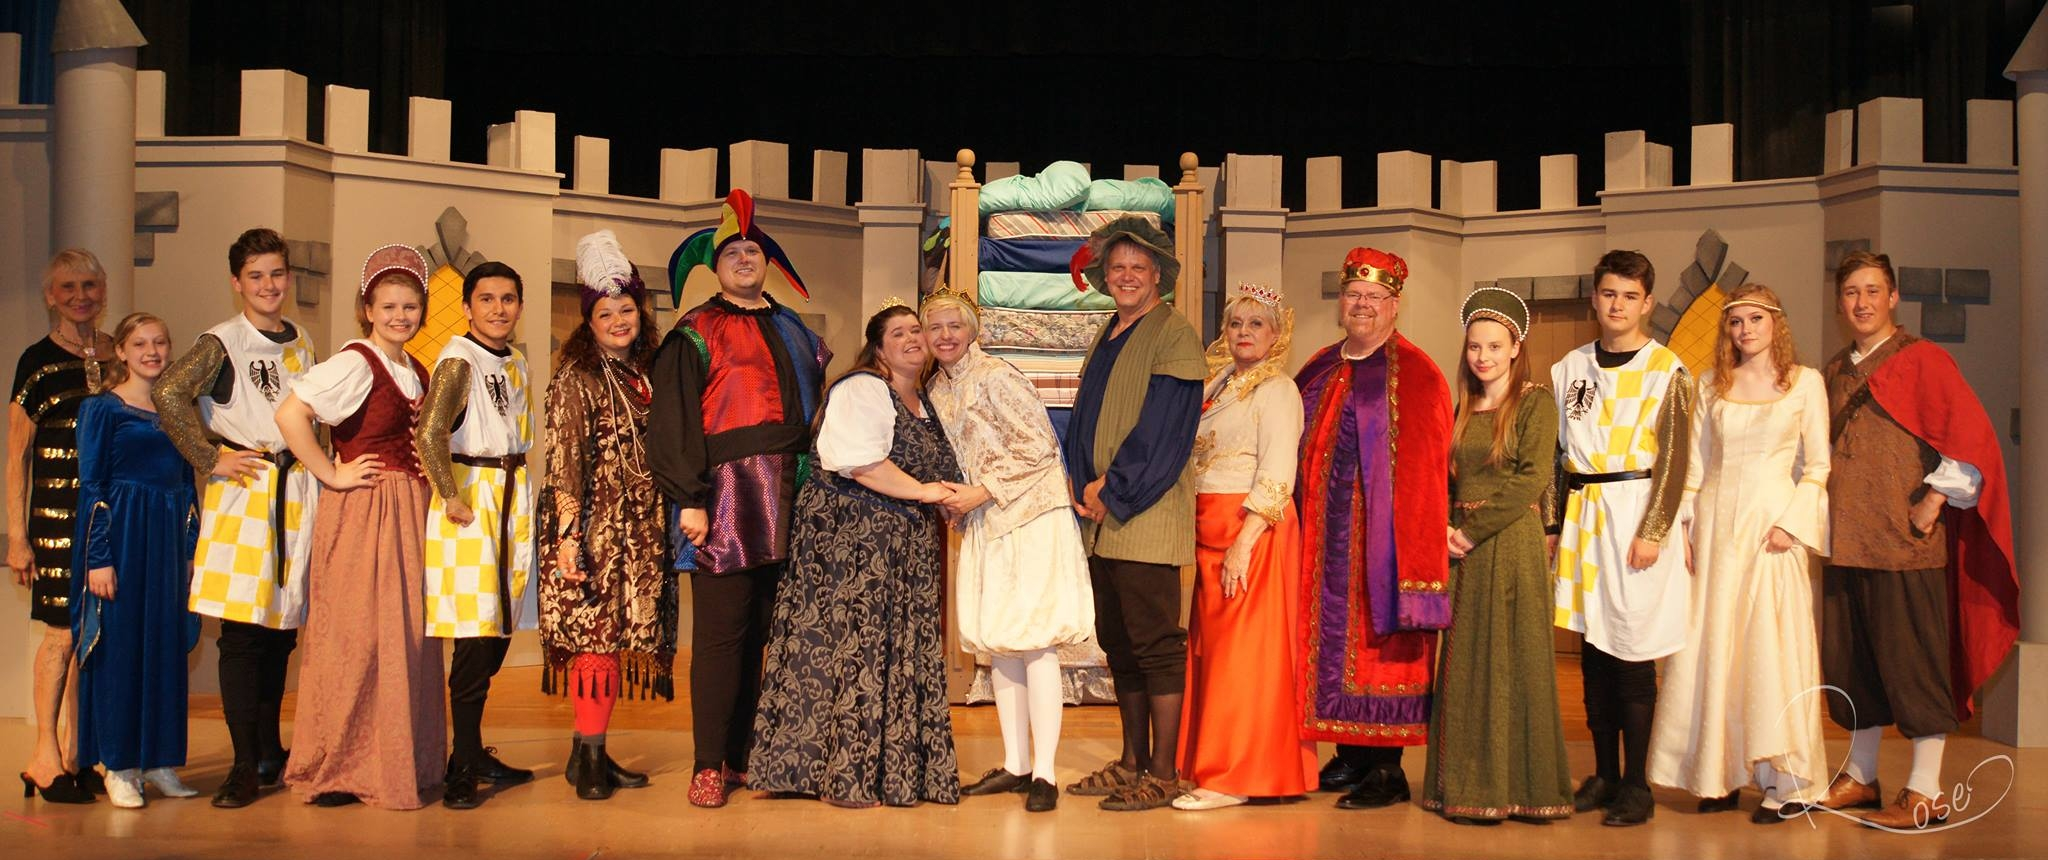 Once Upon A Mattress June 1 - June 10, 2018 Clintonville, WI